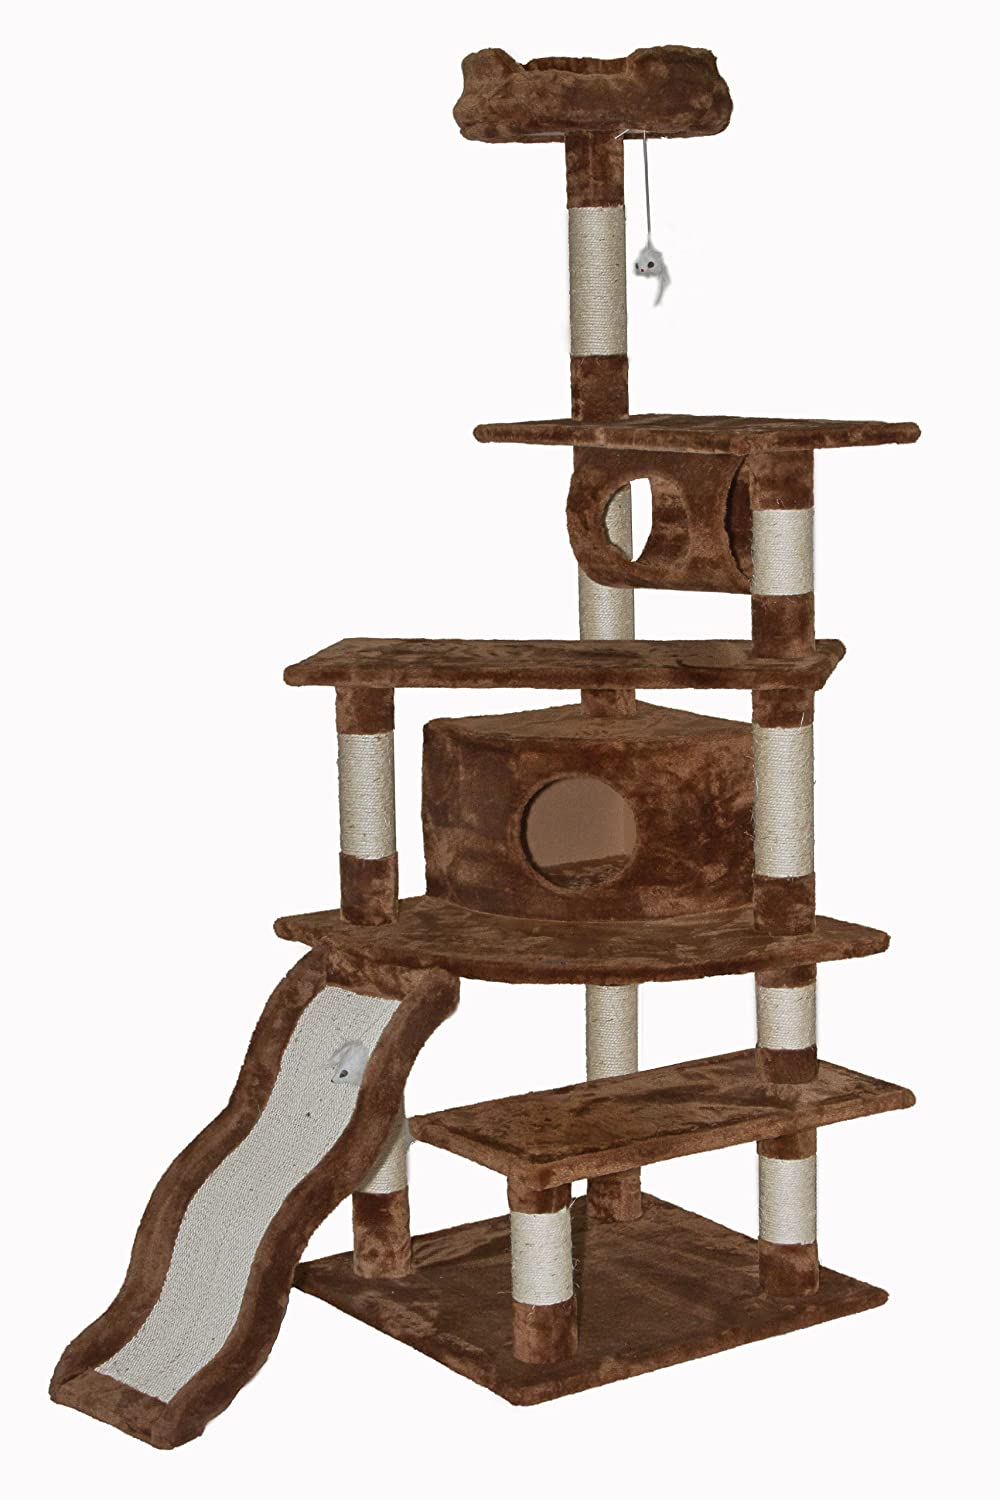 amazoncom  go pet club cat tree inch brown  cat tree and  - amazoncom  go pet club cat tree inch brown  cat tree and condos pet supplies